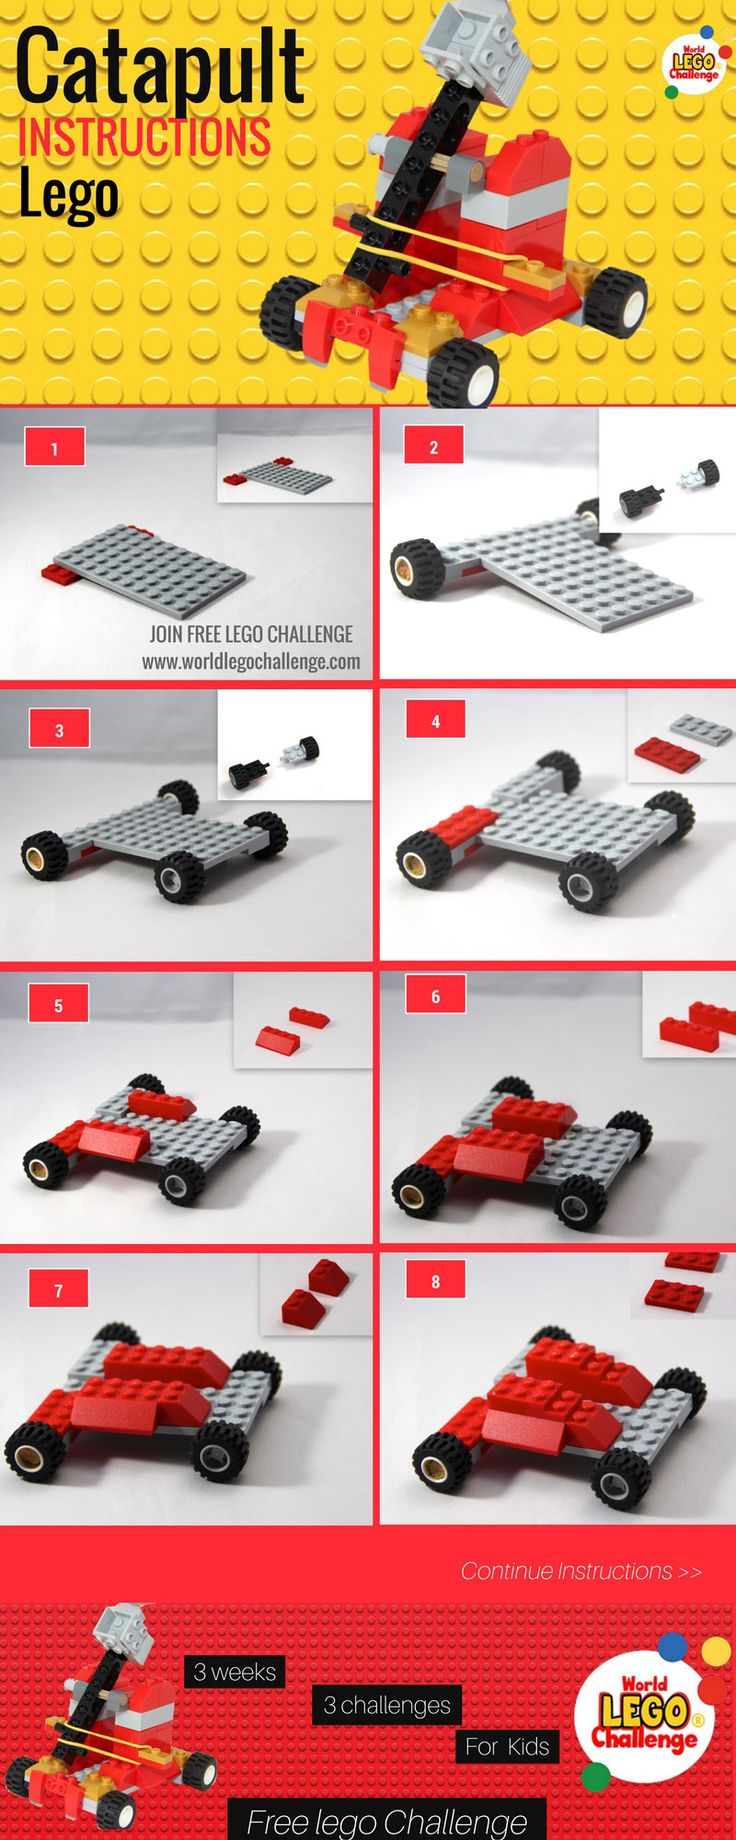 lego catapult how to build